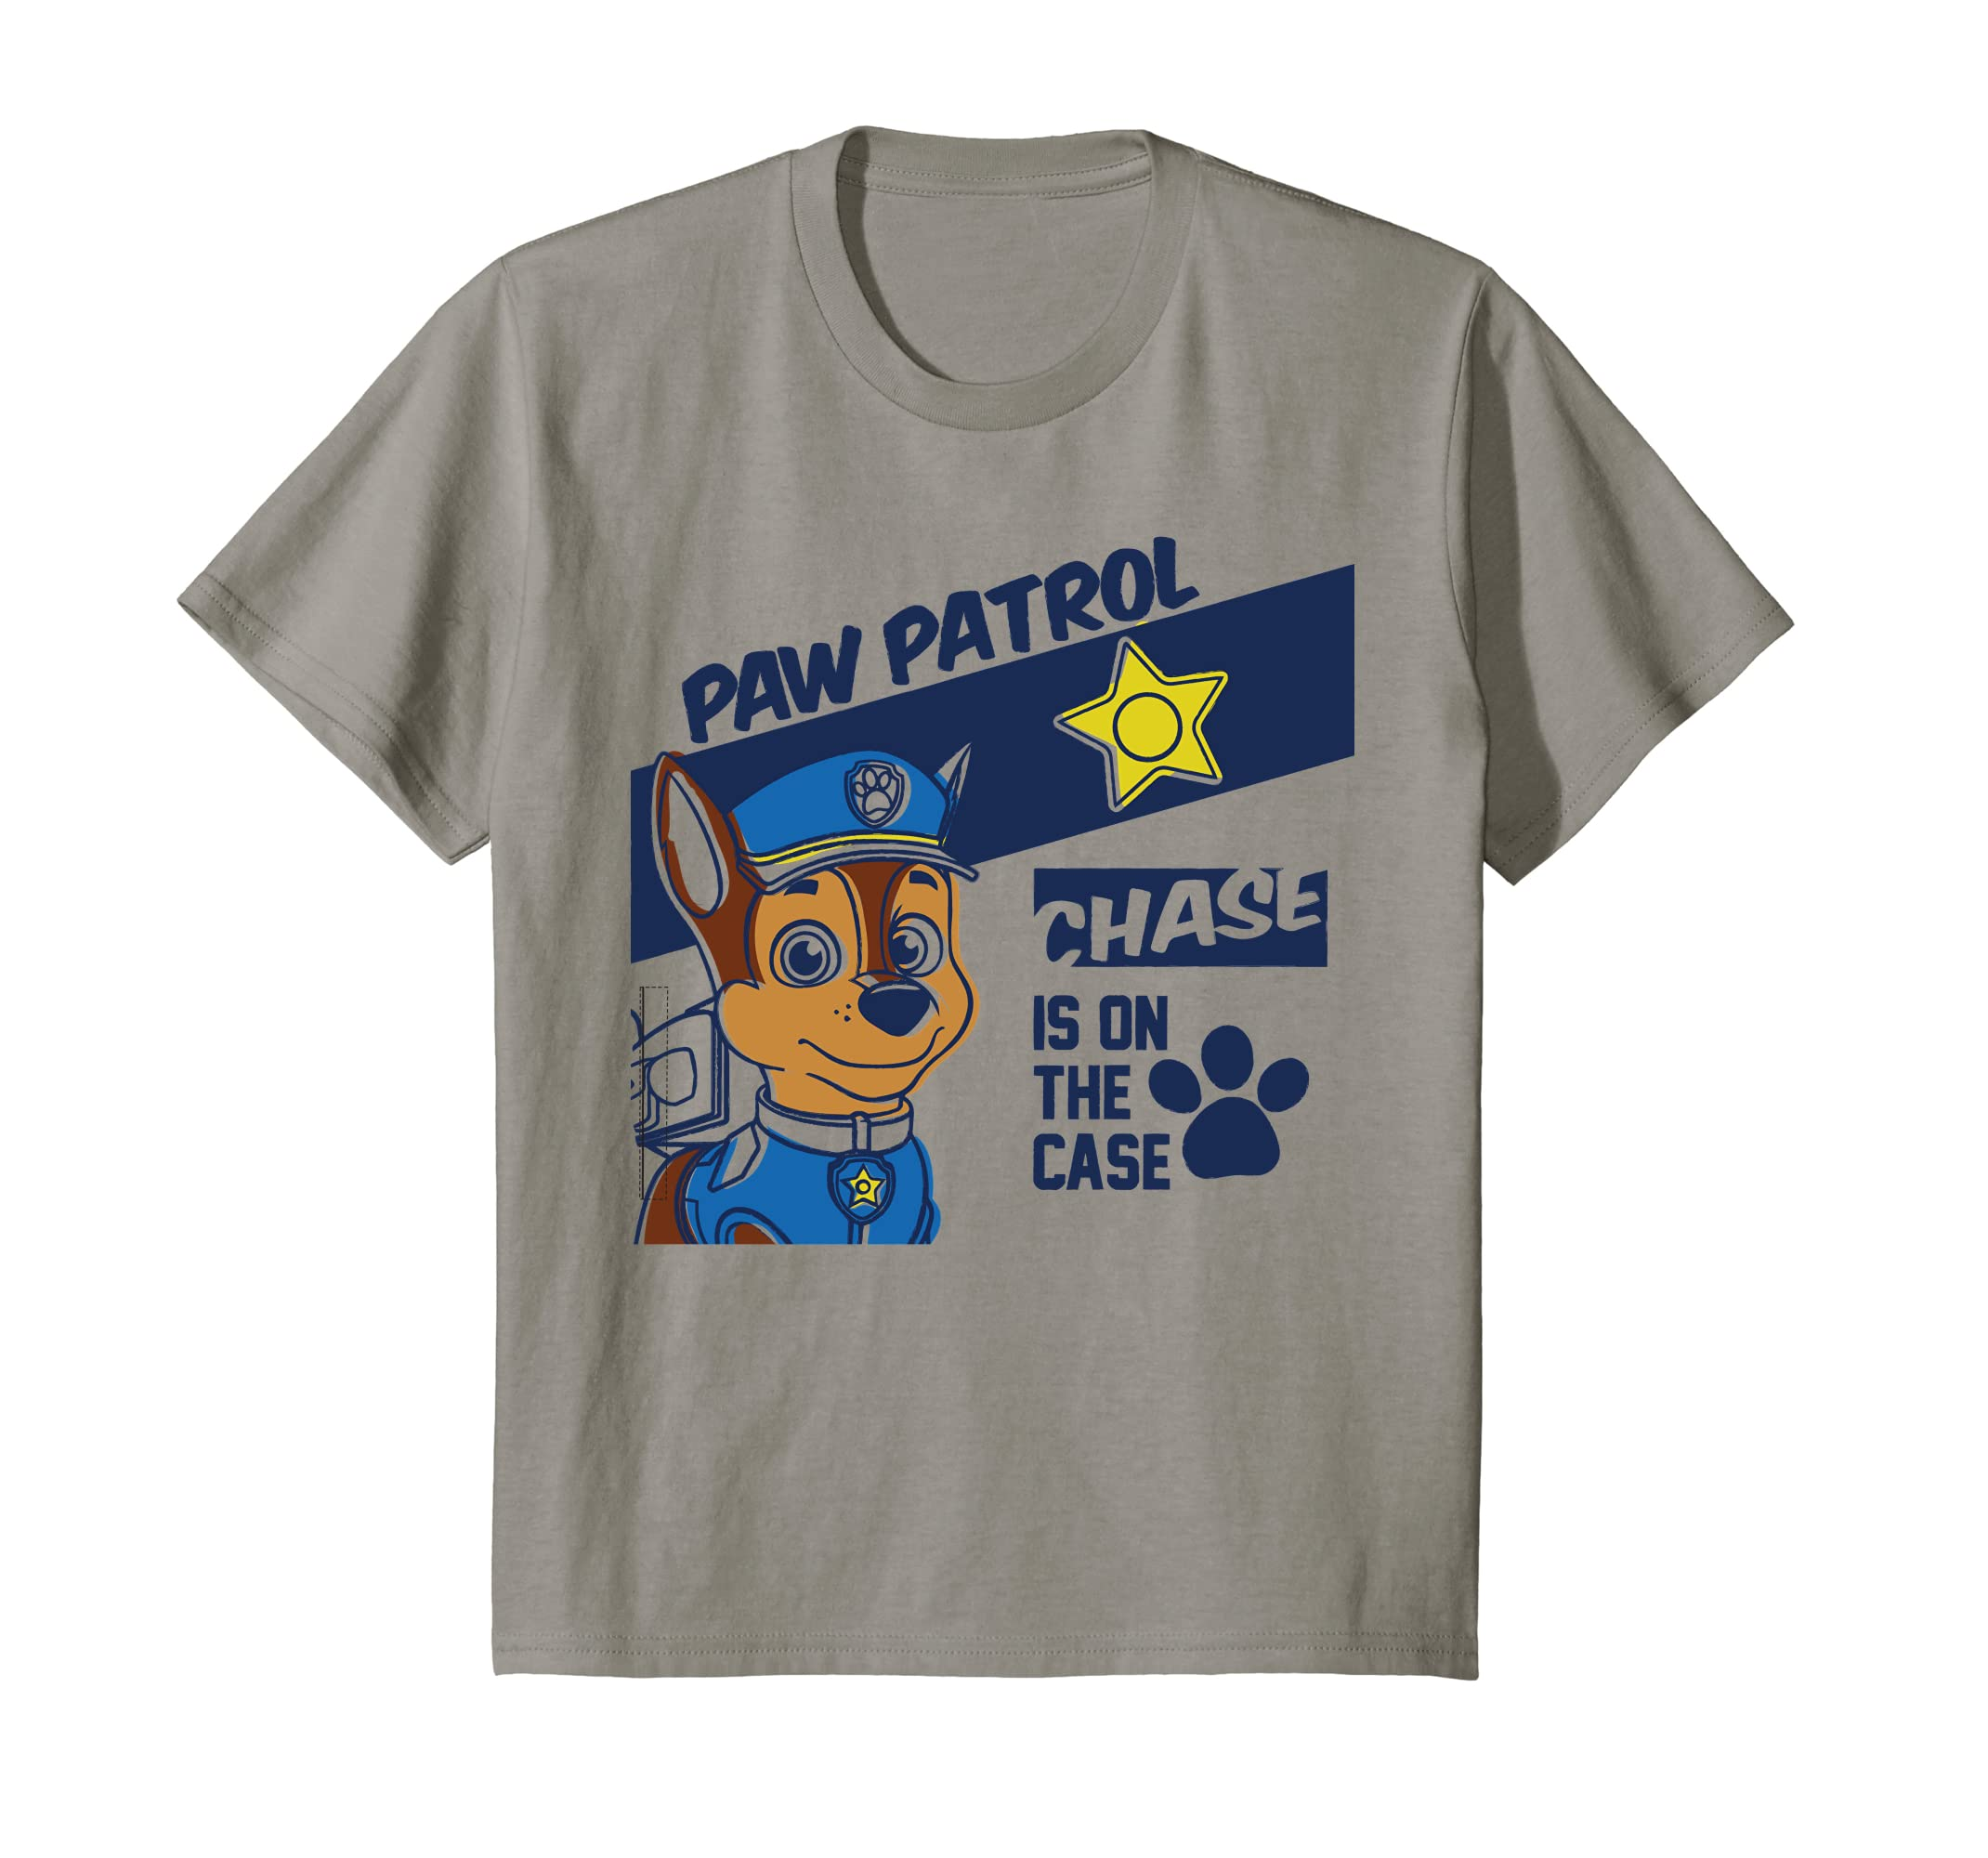 59451e19 Amazon.com: Kids PAW Patrol Chase Is On The Case Badge T-Shirt: Clothing